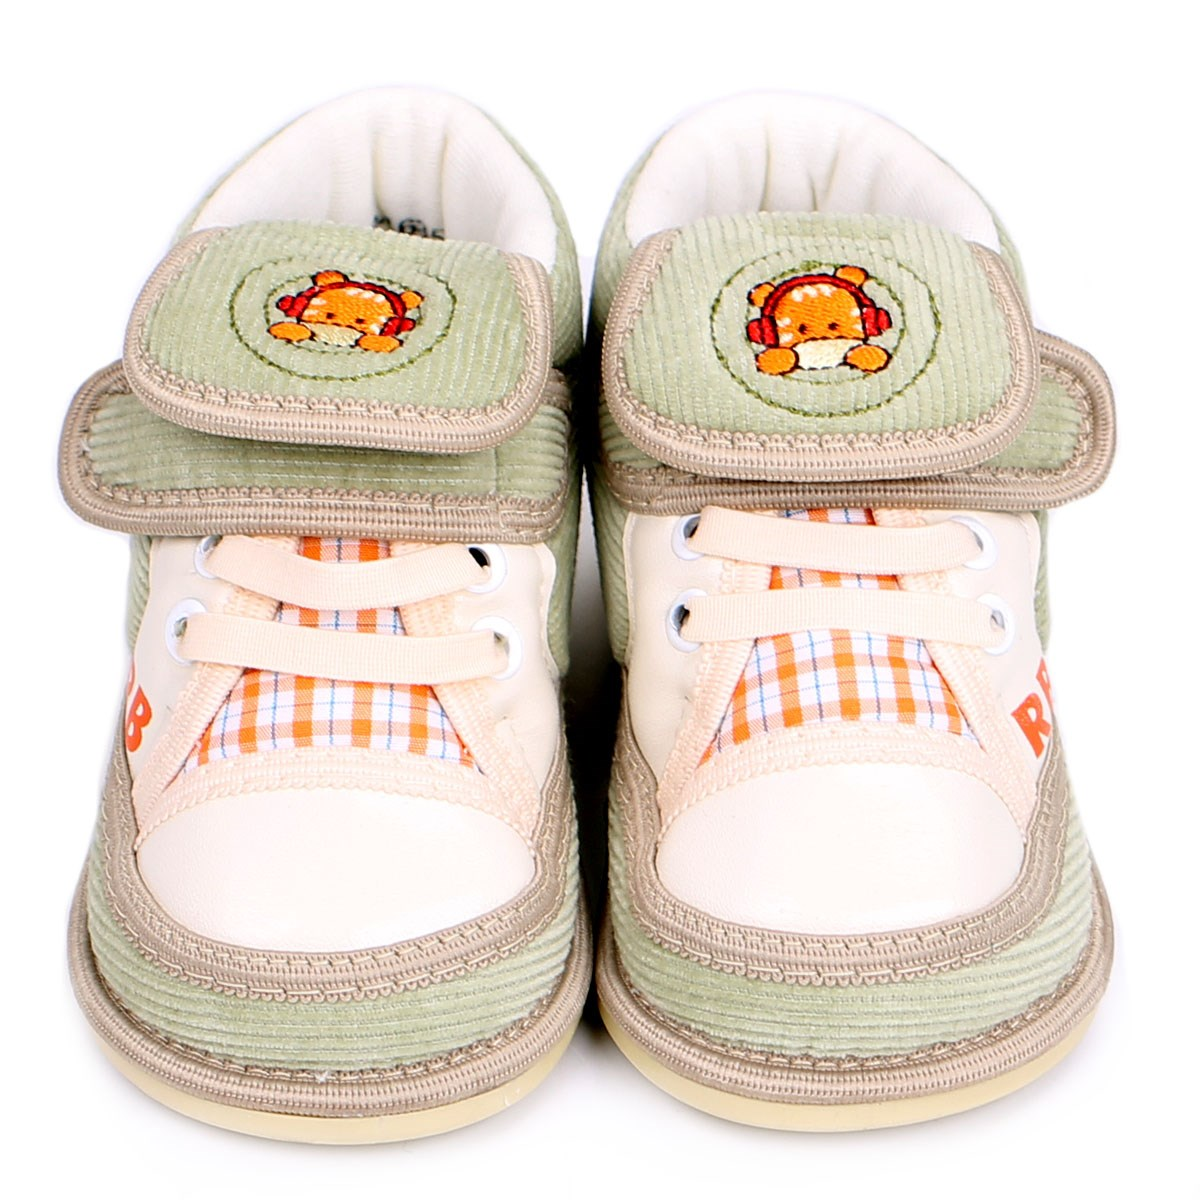 Giay em be RB Baby Walking Shoes 012-1635 KH